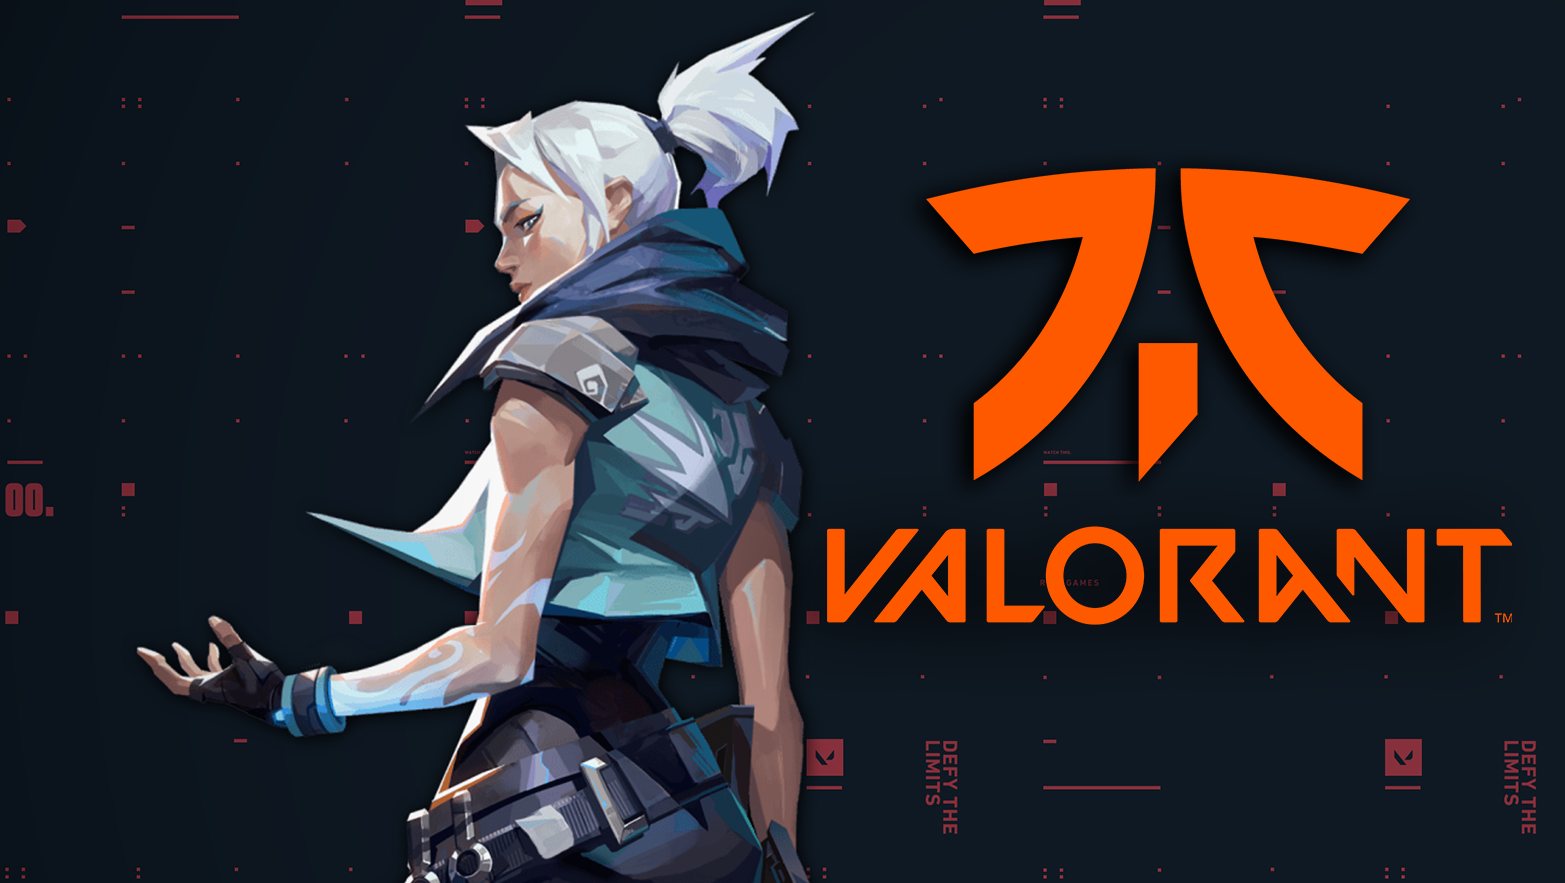 Valorant Jett artwork / Fnatic logo